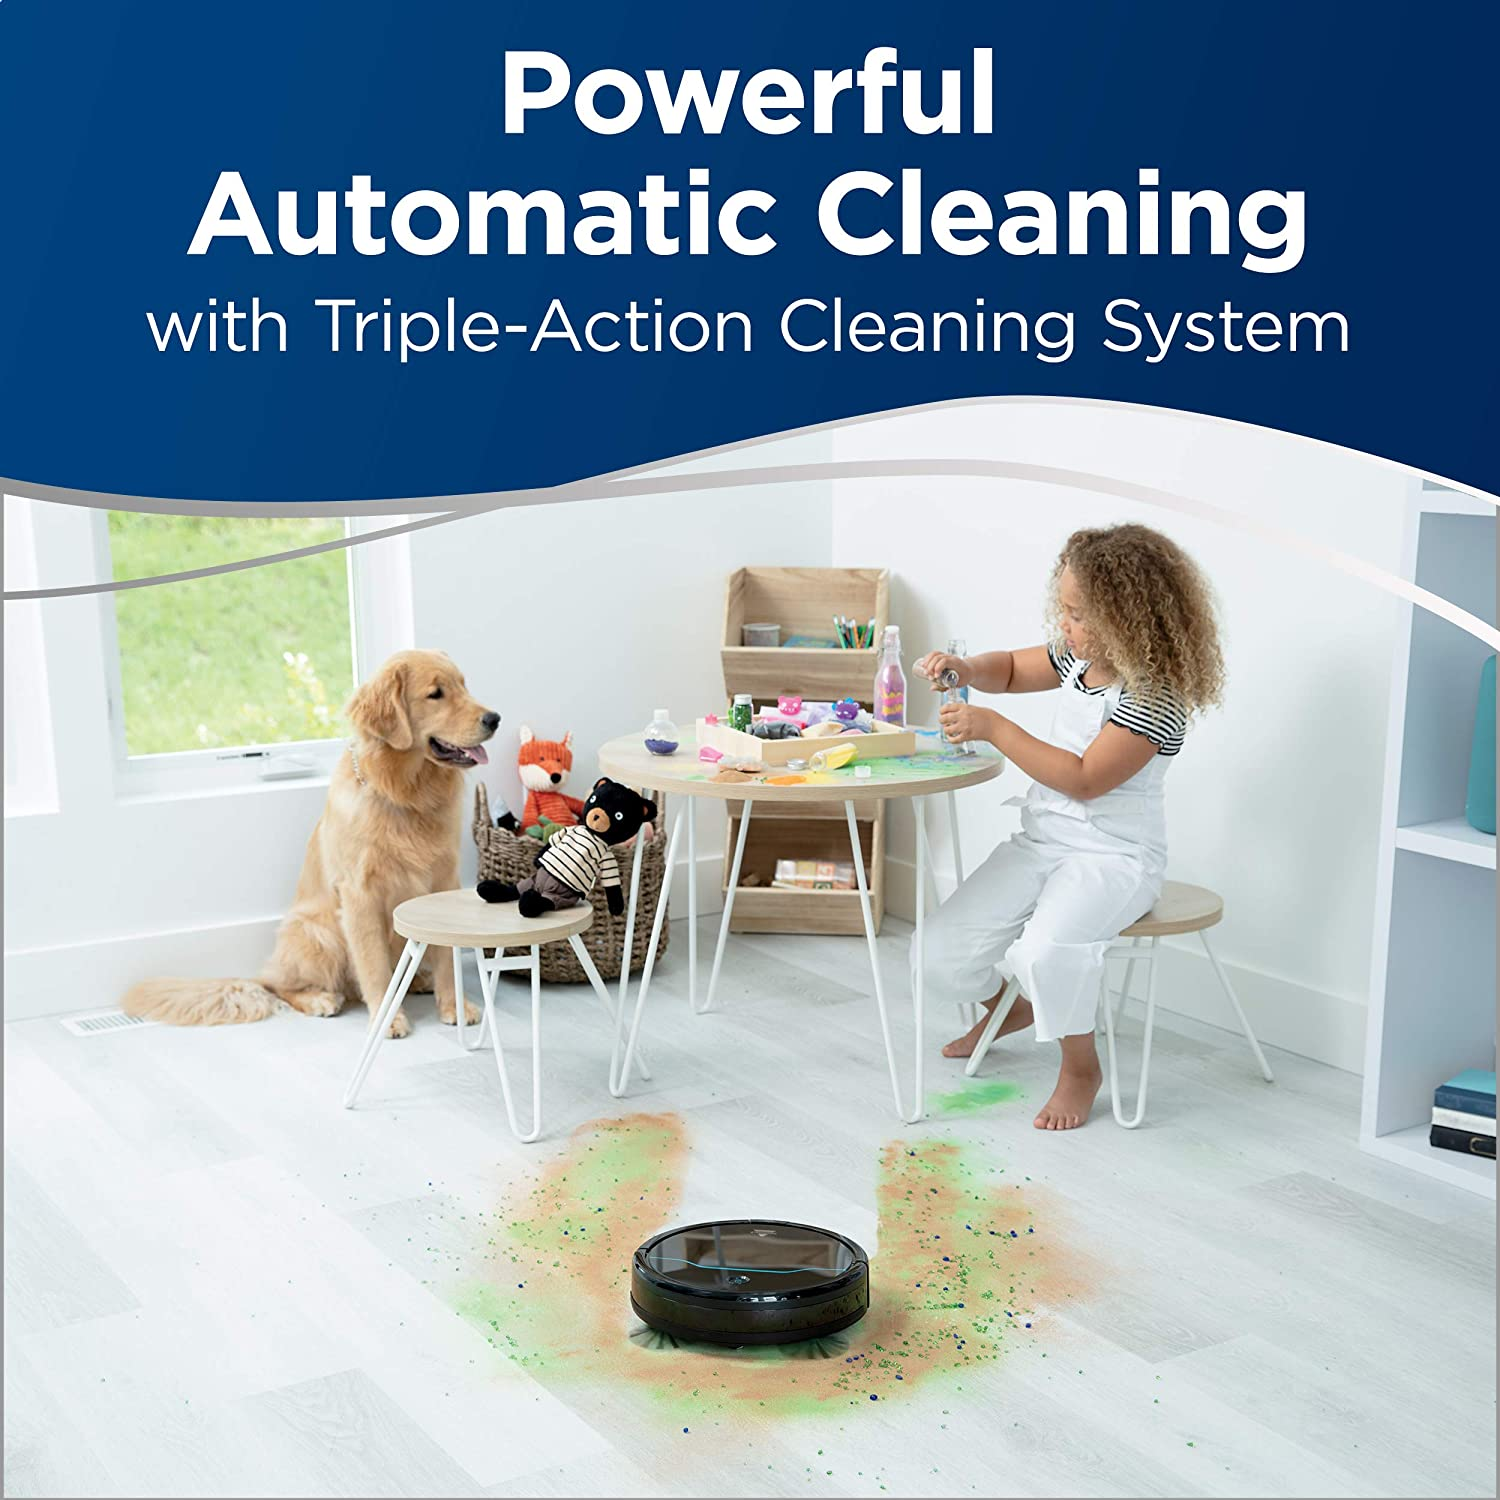 BISSELL EV675 Robot Vacuum Cleaner for Pet Hair with Self Charging Dock 2503 Black